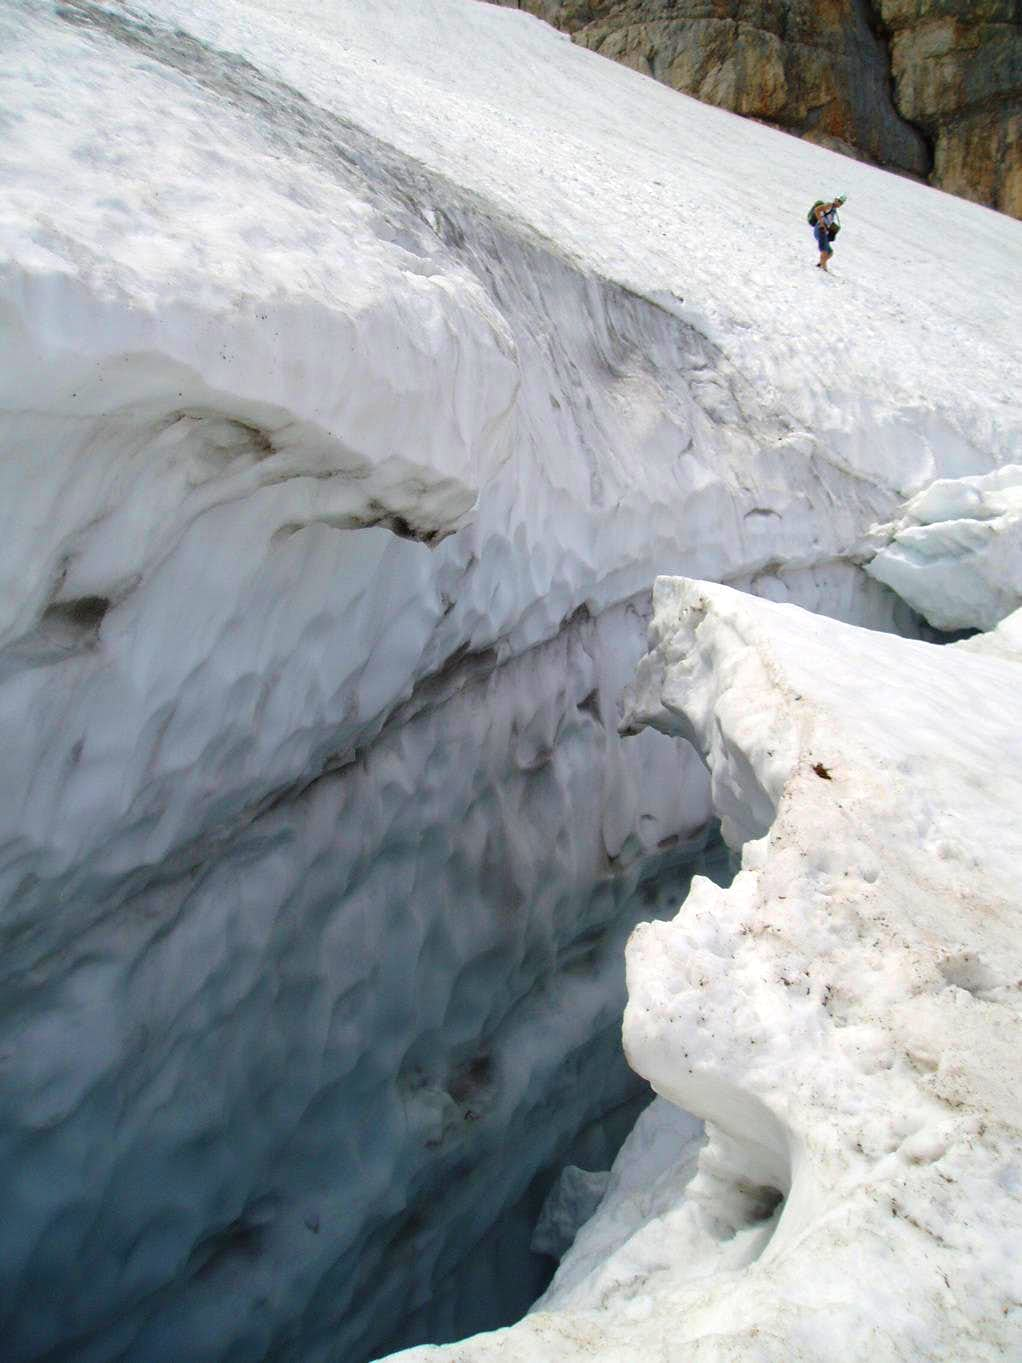 Crevasse on the descent from Hoher Dachstein